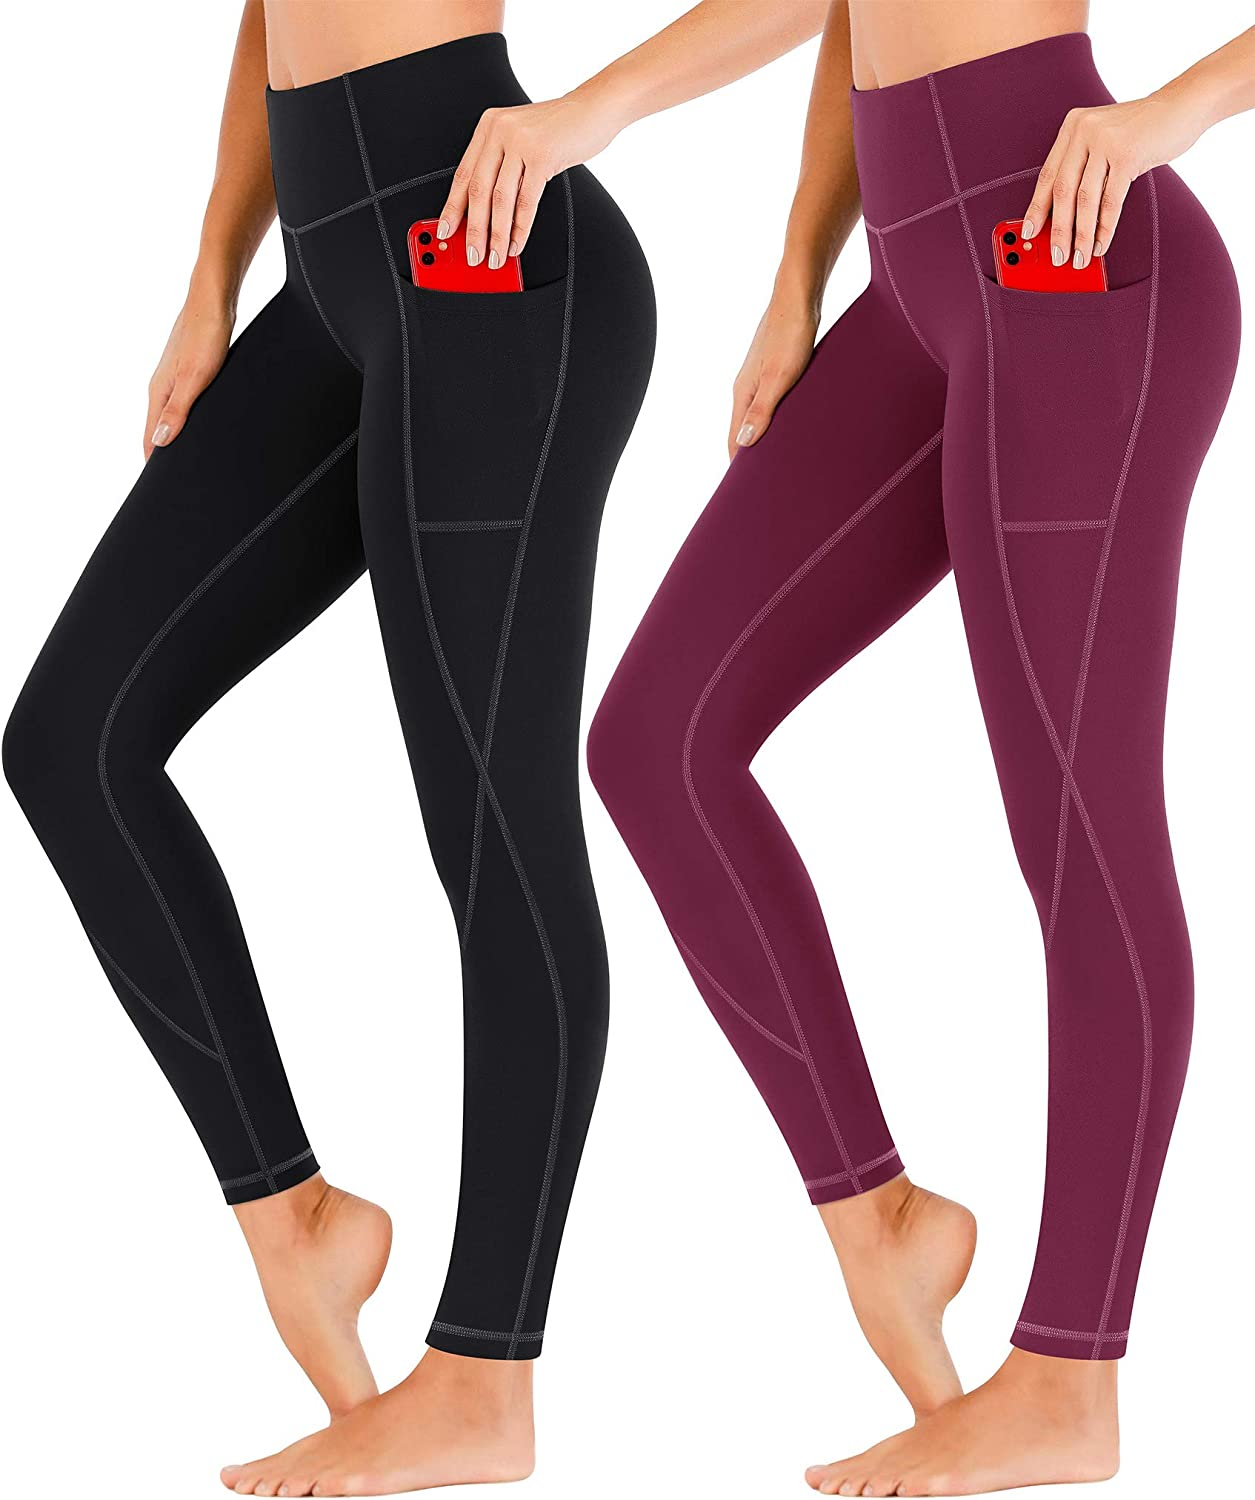 Heathyoga Yoga Pants for Women Waisted with Legging High Cheap Limited time trial price mail order shopping Pockets